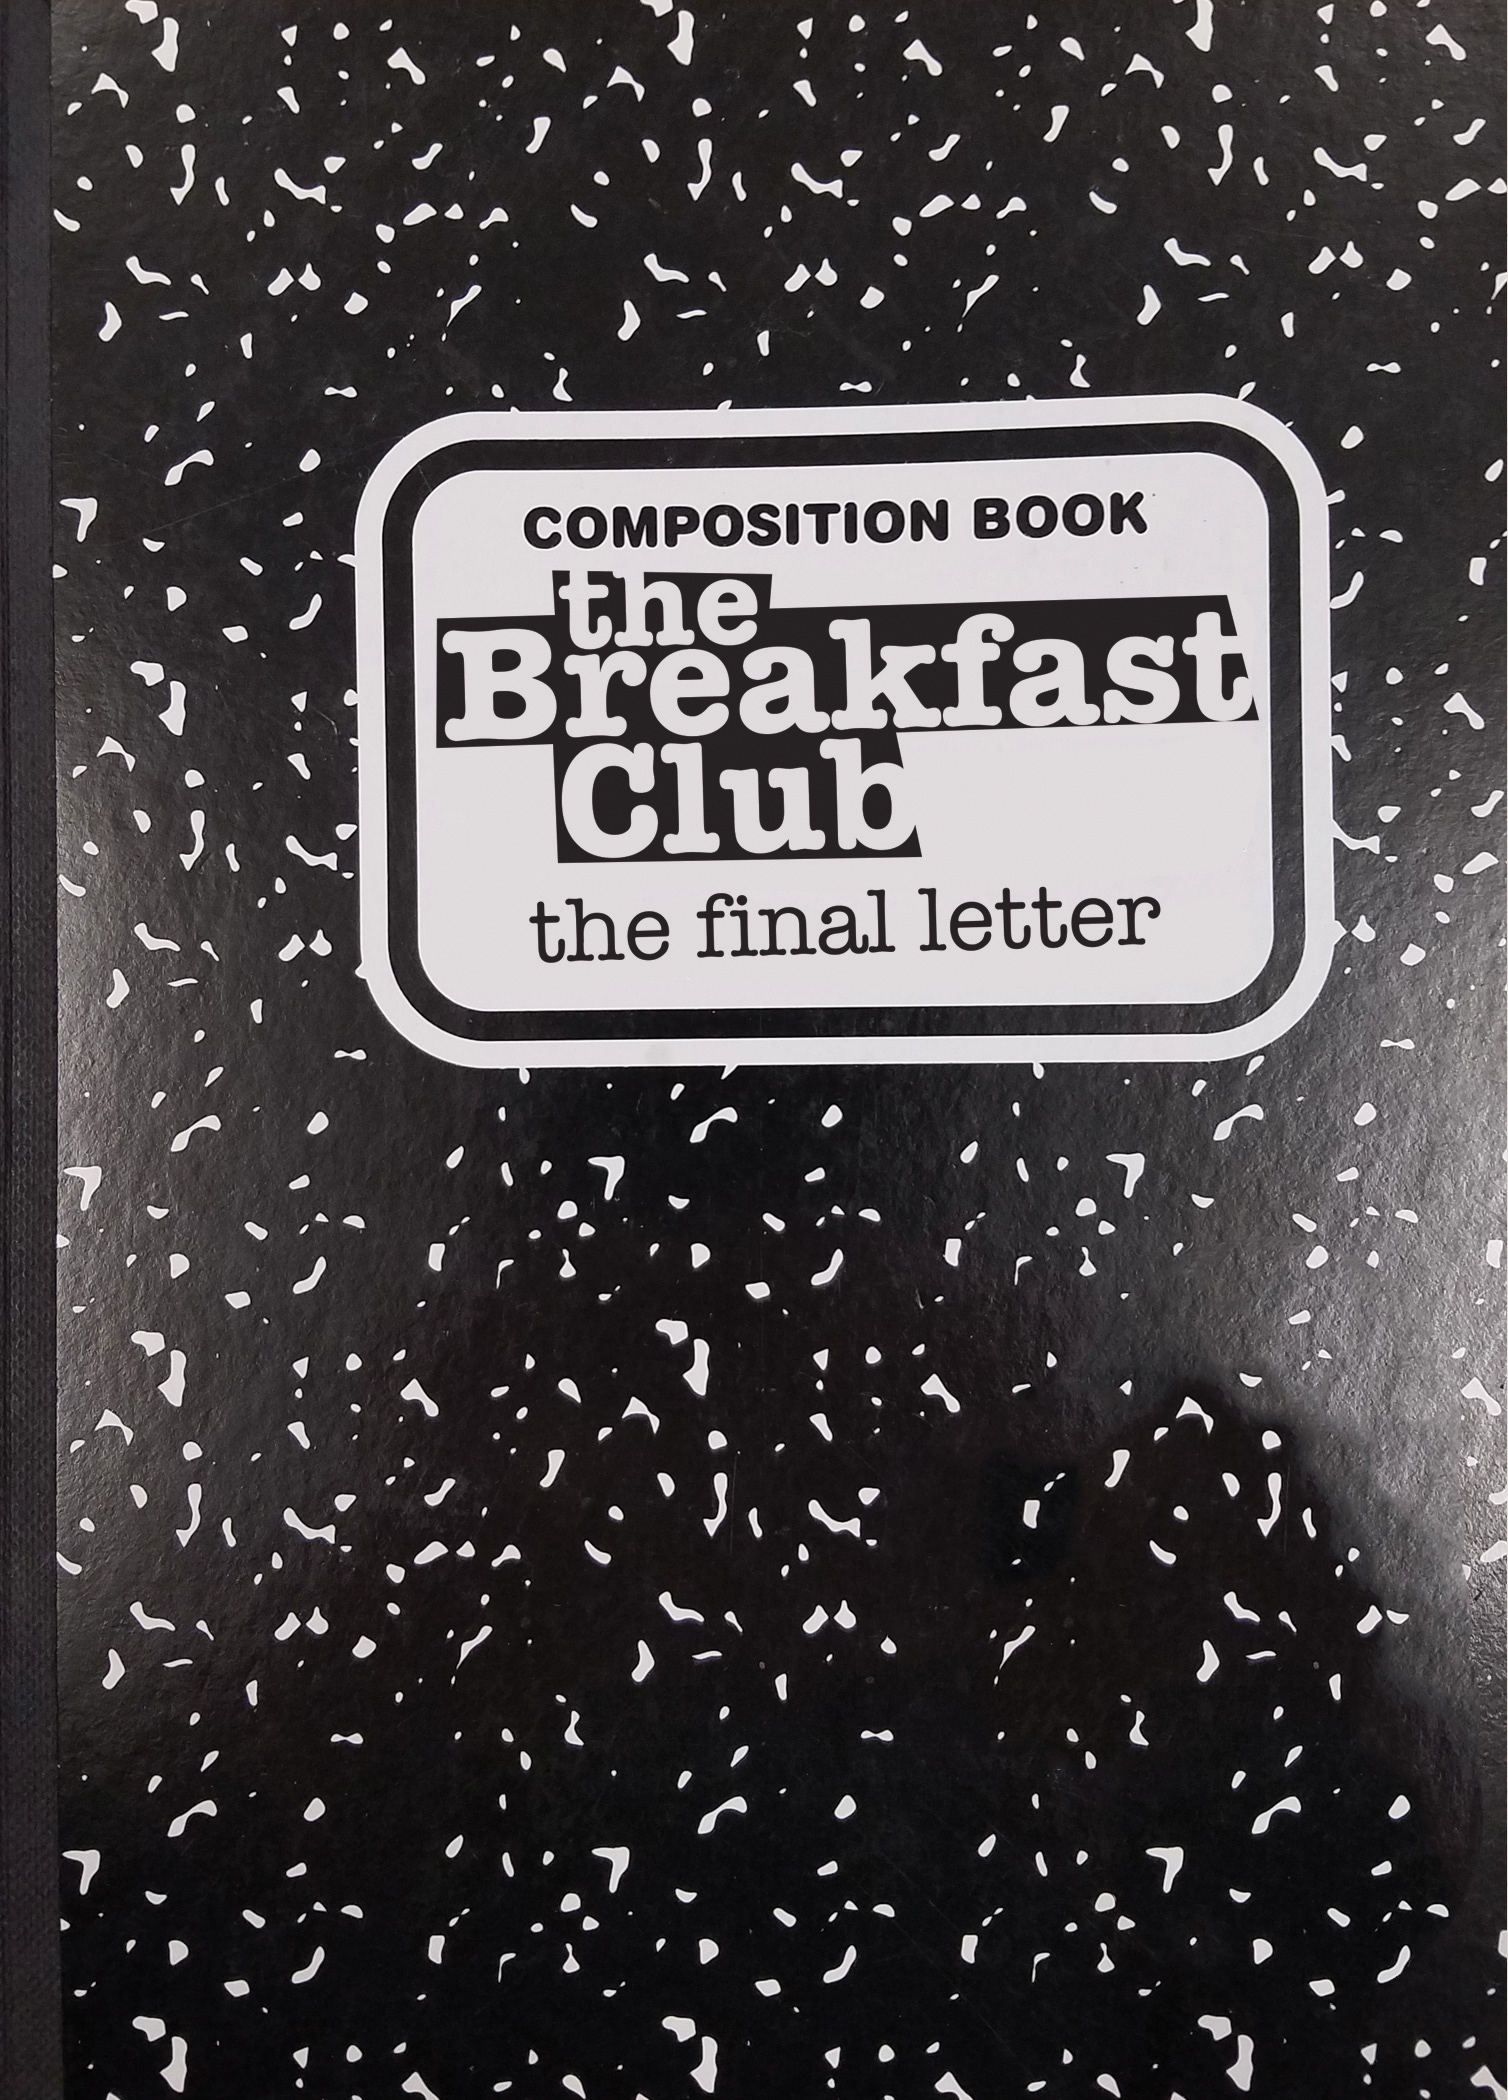 Caleb Finn The Breakfast Club DVD Insert